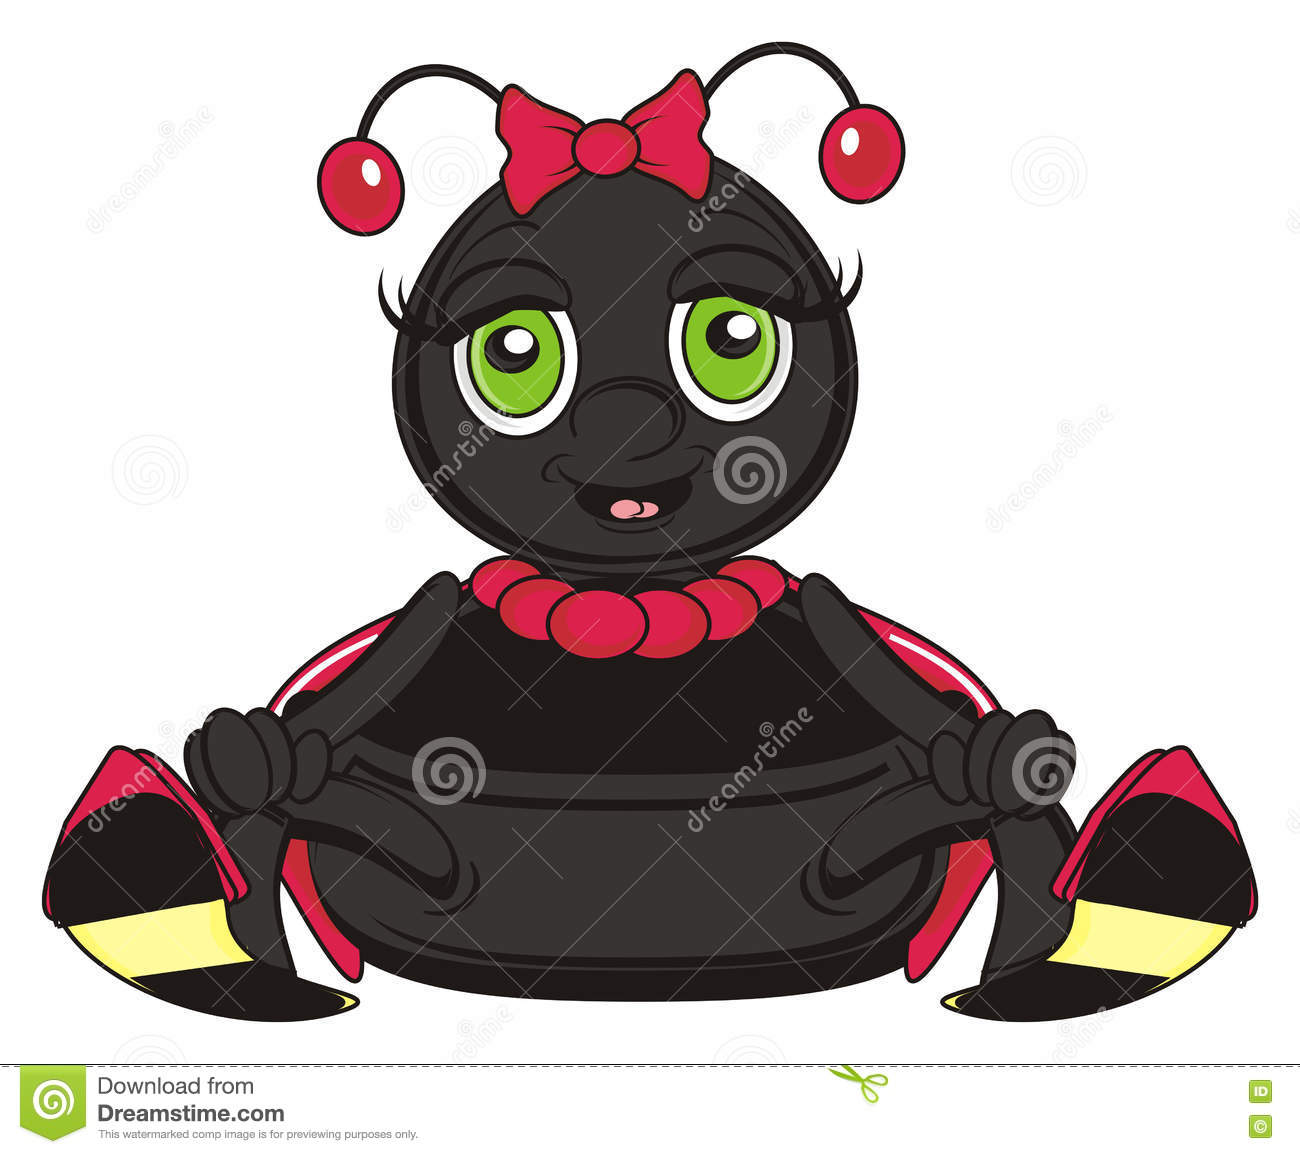 Funny ladybug with red bow on the head